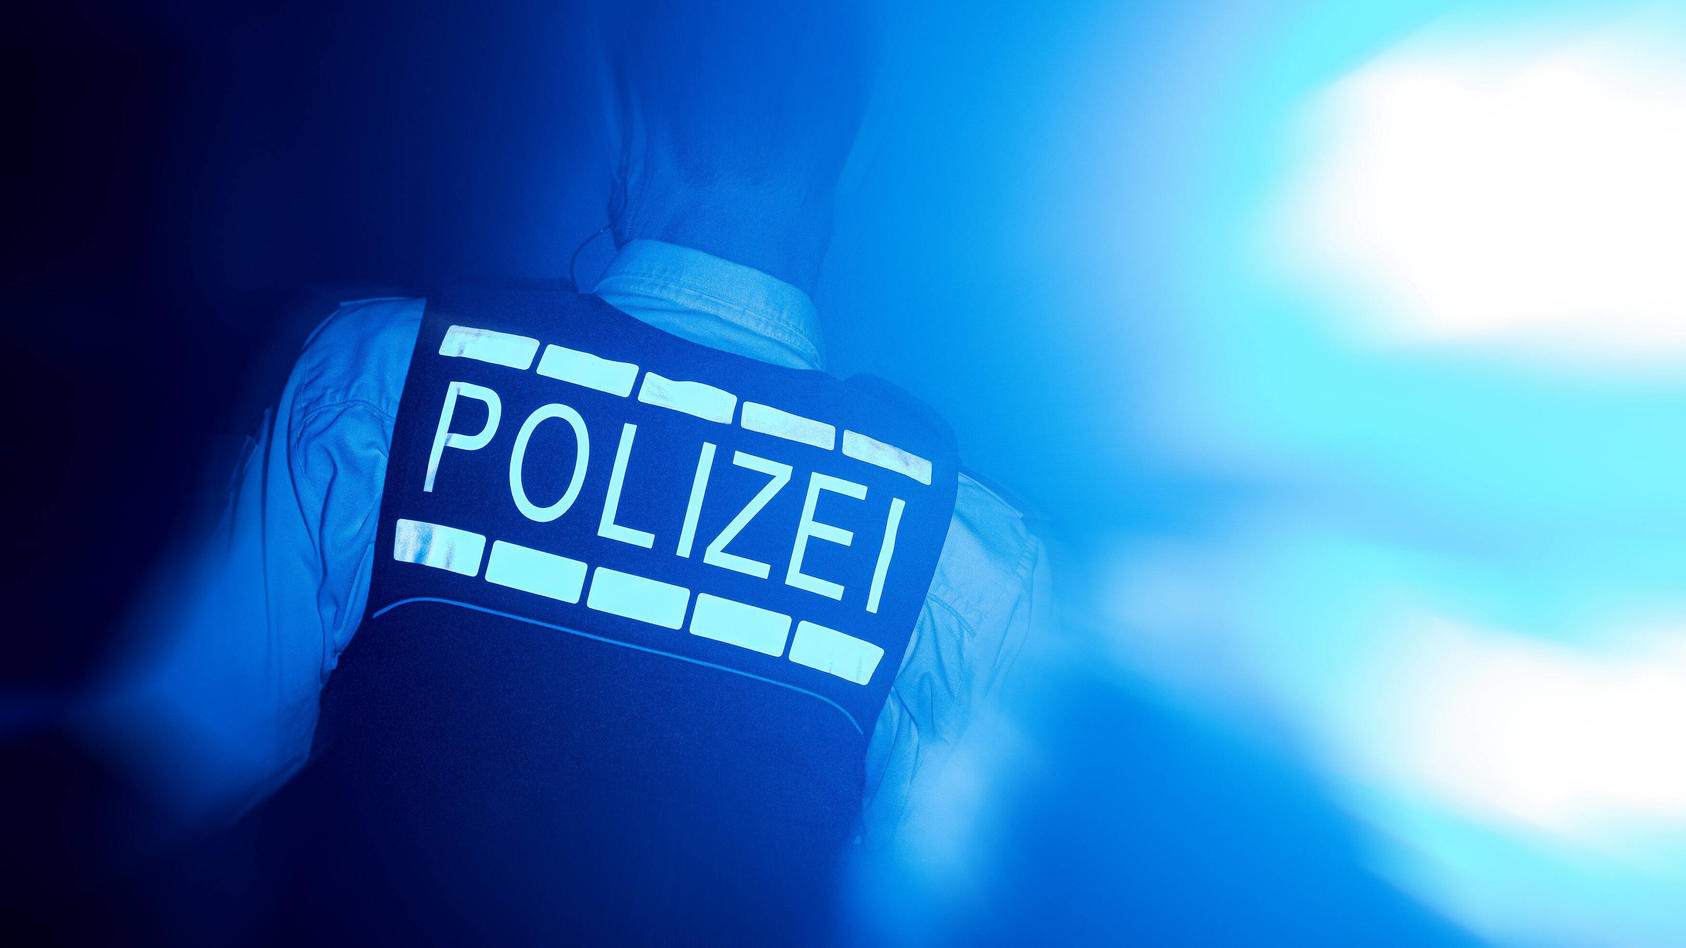 Symbolbild mit einem Polizisten und Blaulicht Stuttgart *** Symbol picture with a policeman and blue light Stuttgart Co